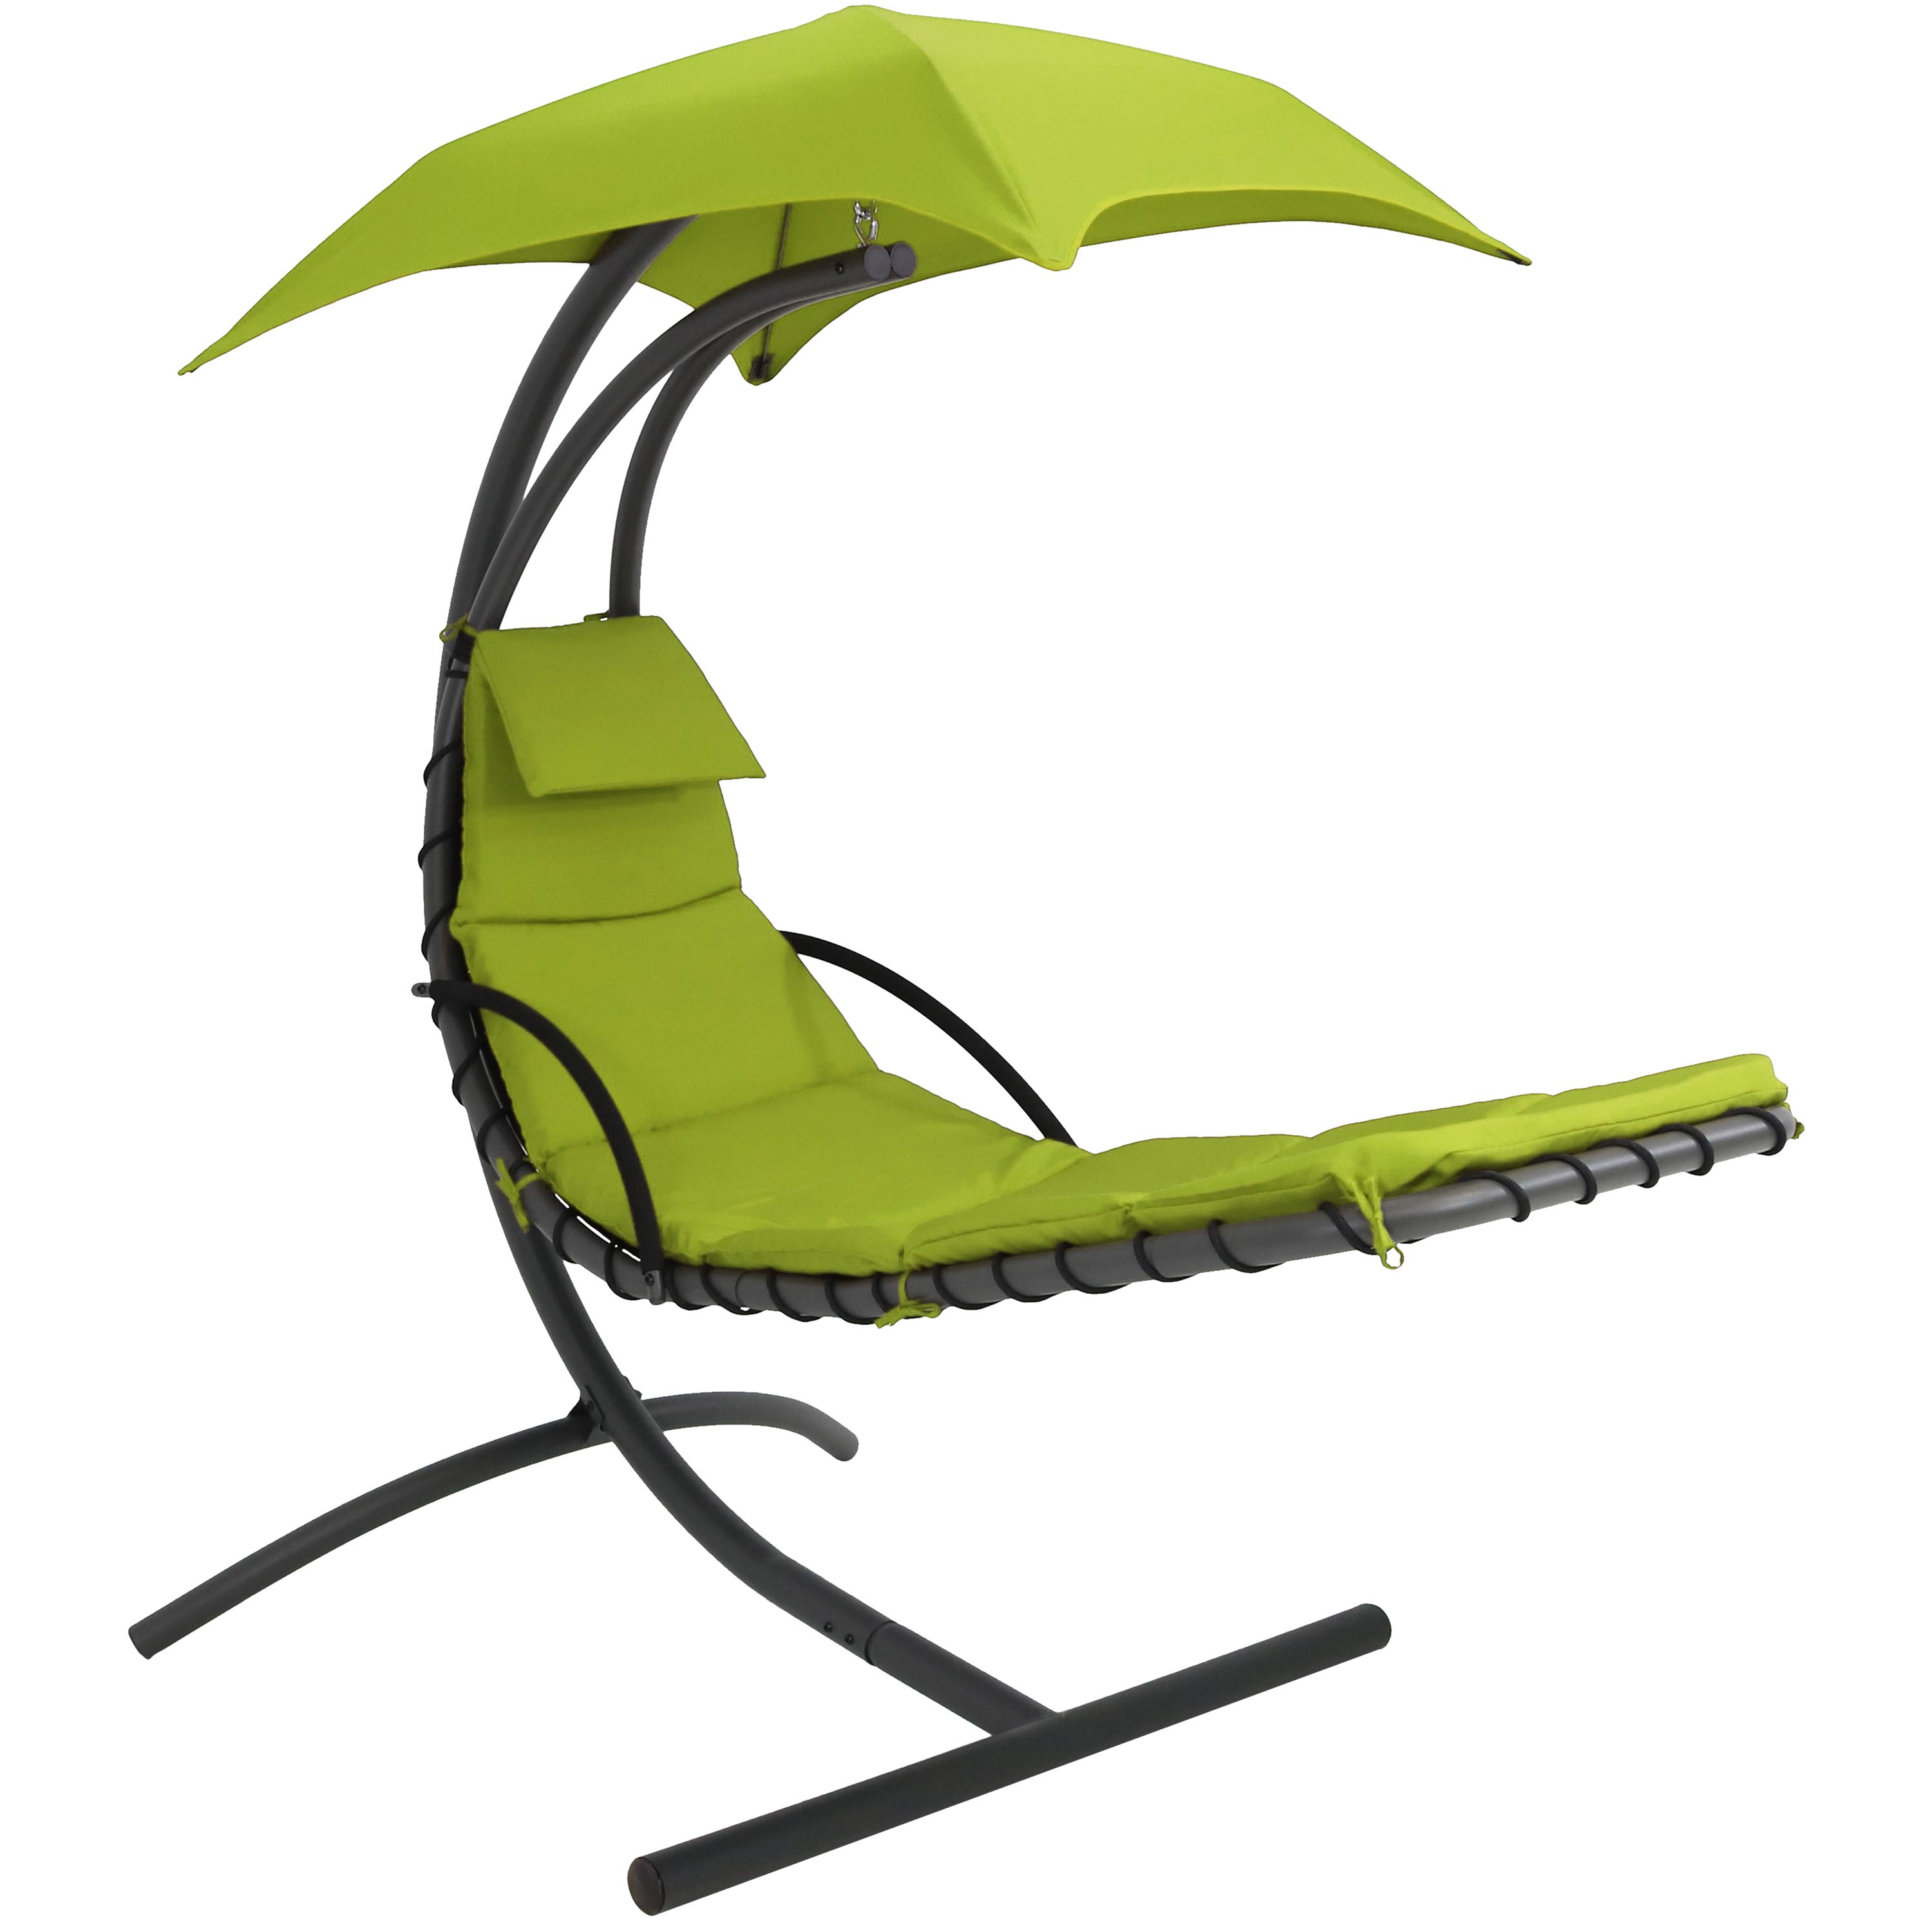 Floating Chaise Lounger Swing Chair Canopy Long Apple Green Pound Photo